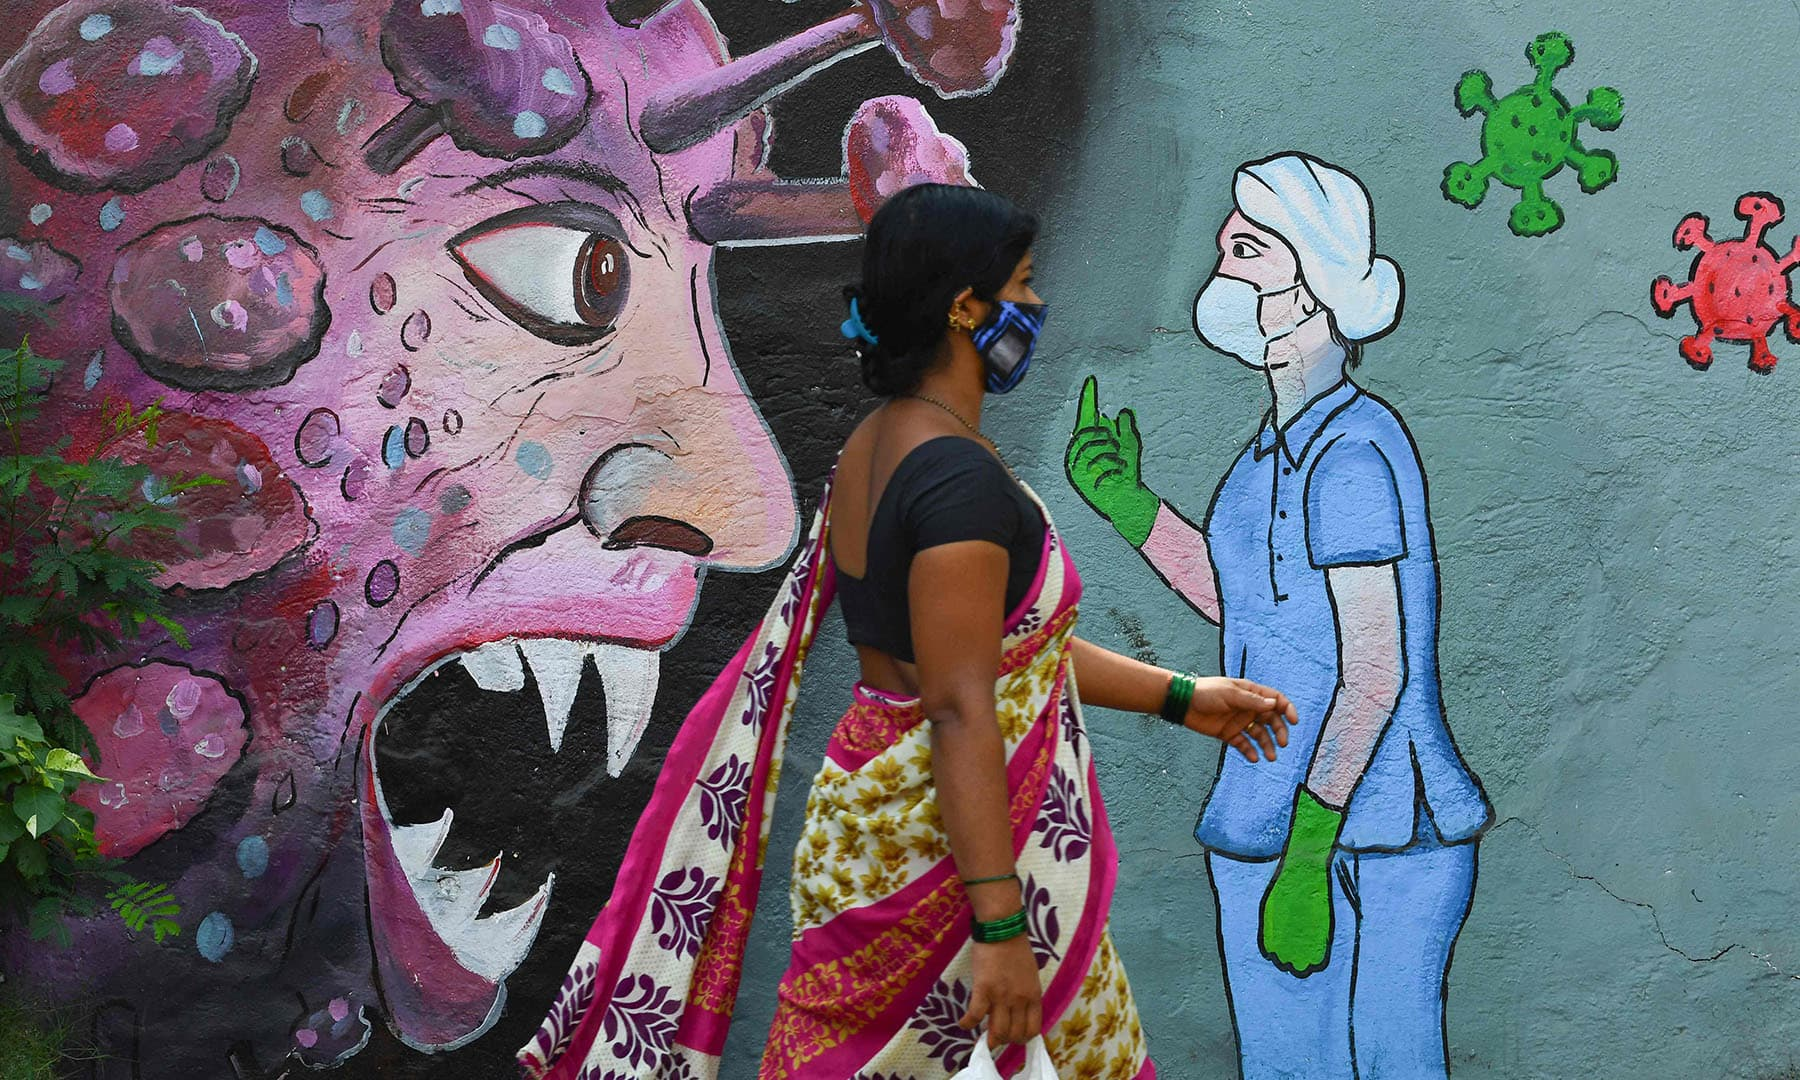 A pedestrian walks past a wall mural depicting a frontline medical staff stopping the Covid-19 coronavirus, in Navi Mumbai on June 7, 2021. — AFP